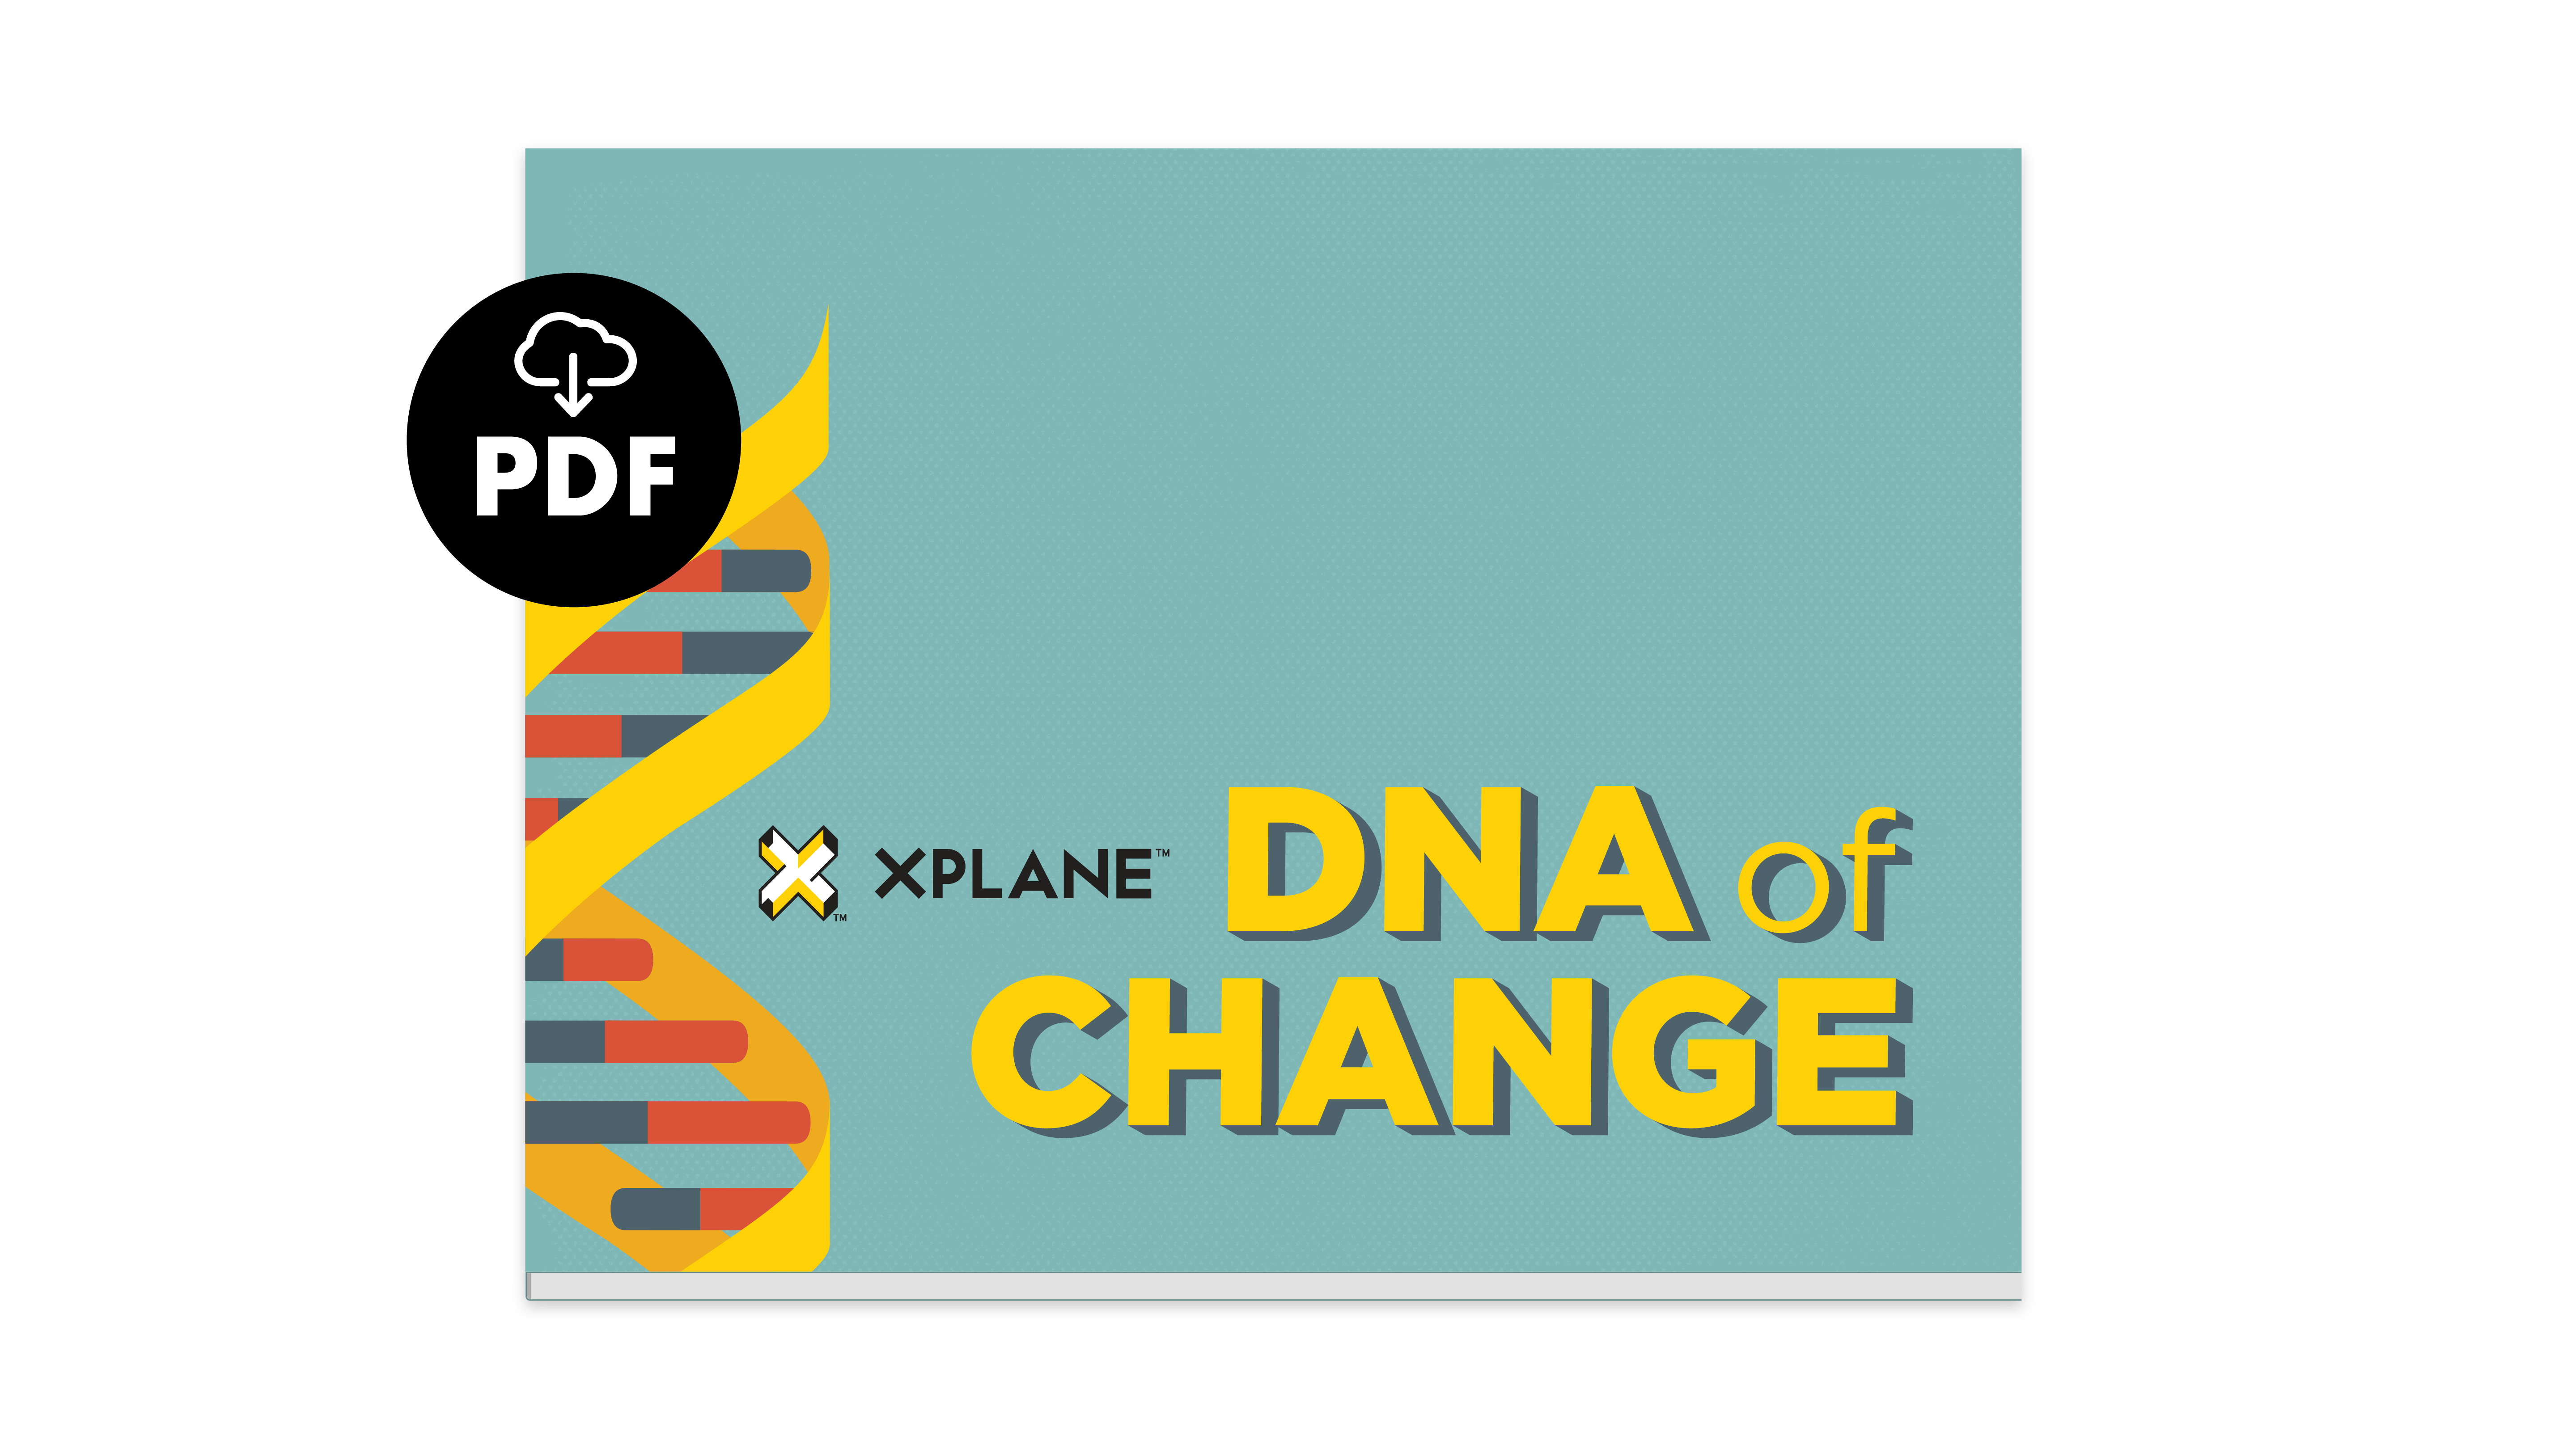 Cover for XPLANE's DNA of Change ebook. There's an icon showing this is a downloadable eBook